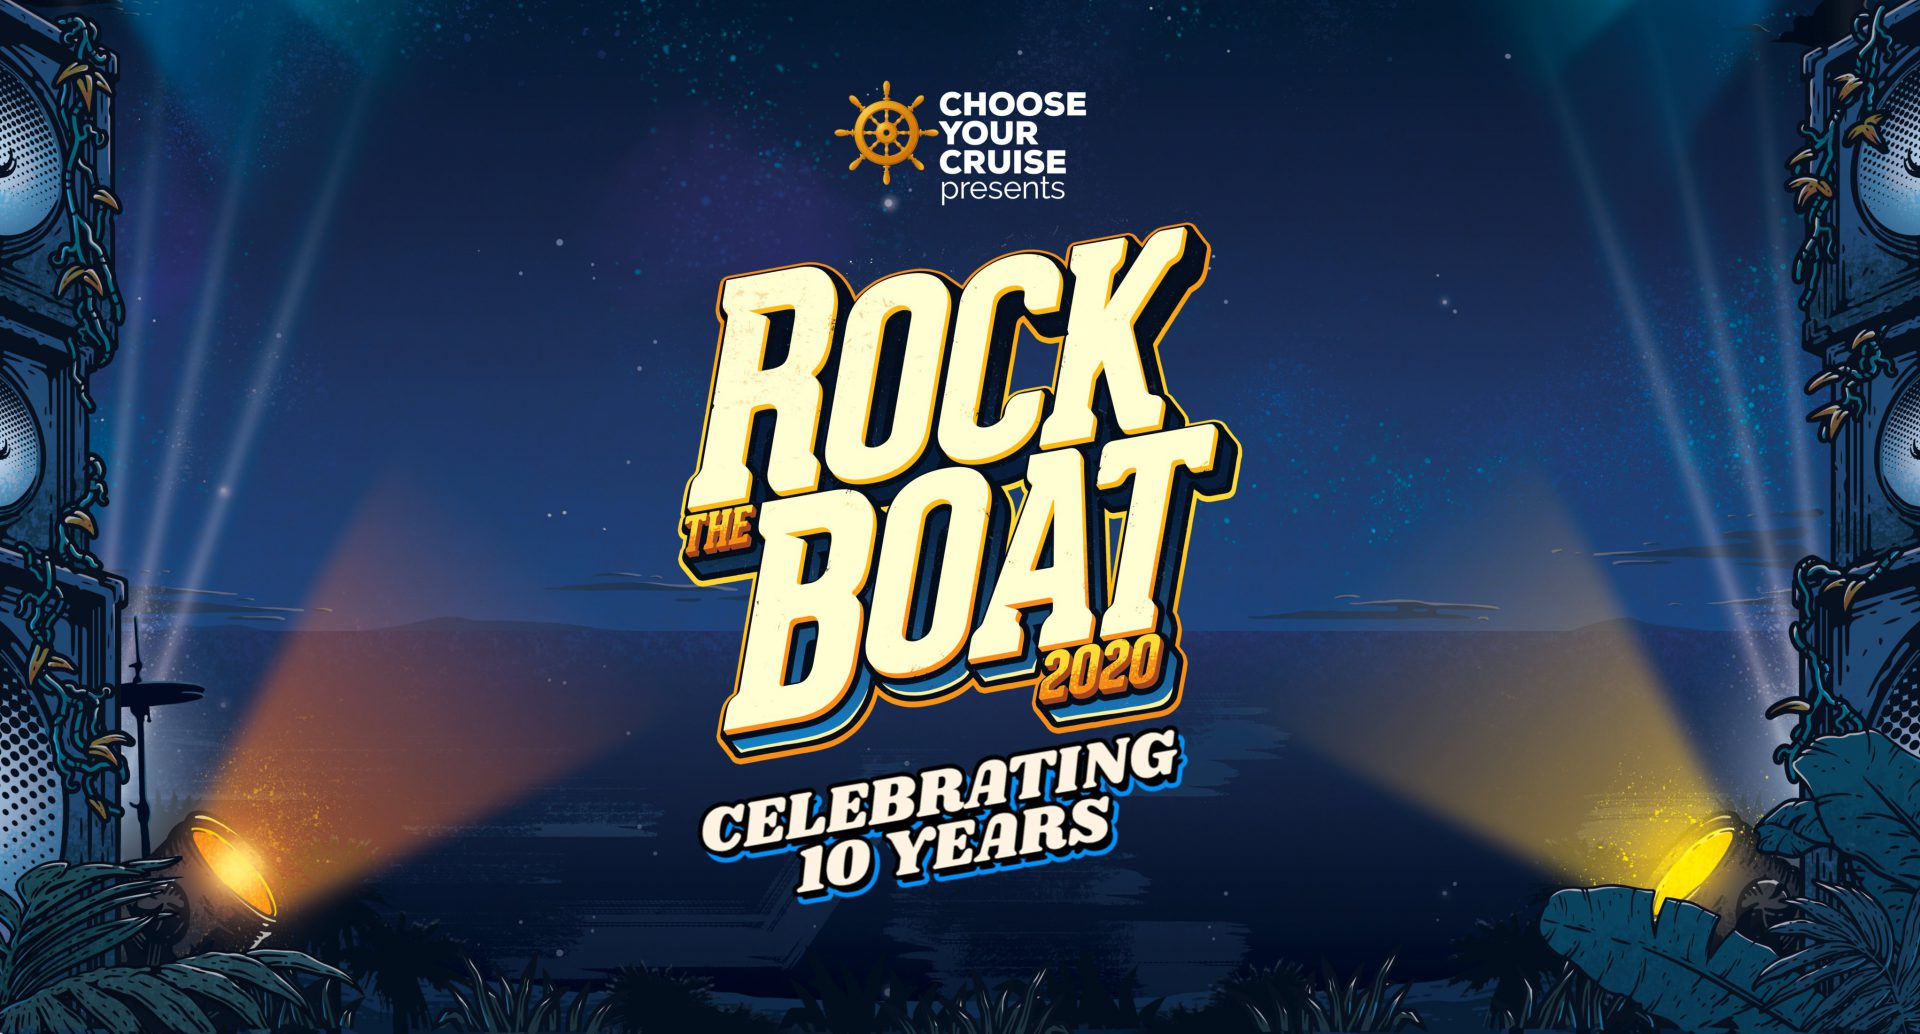 Rock the Boat 2020 Has Arrived – Celebrating 10 years of Rocking the High Seas!